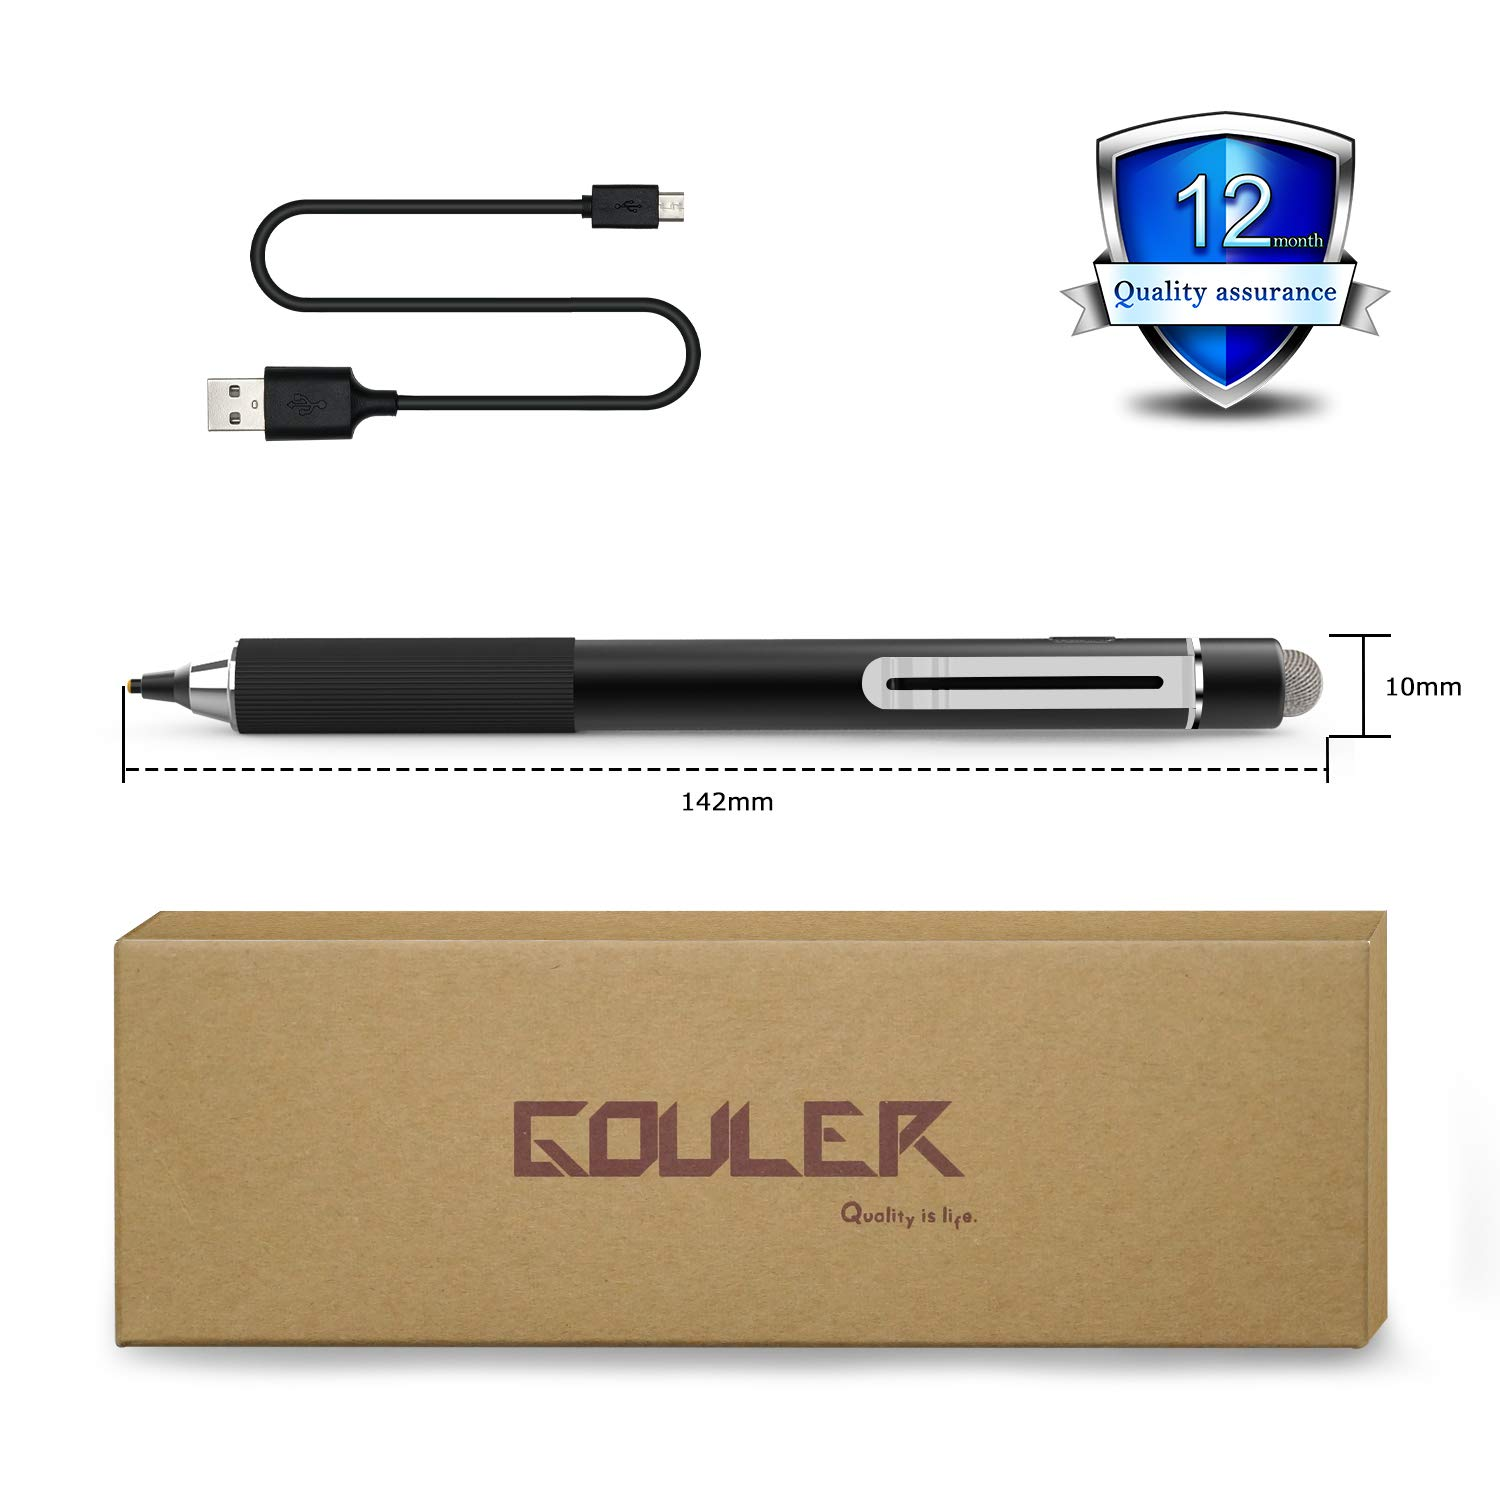 Gouler High-precision Stylus Pen with 2 in 1 Copper & Mesh Fine Tip Rechargeable Capacitive Digital Pen for iPad, iPhone, Android and Most of Touch Screen Devices by Gouler (Image #7)